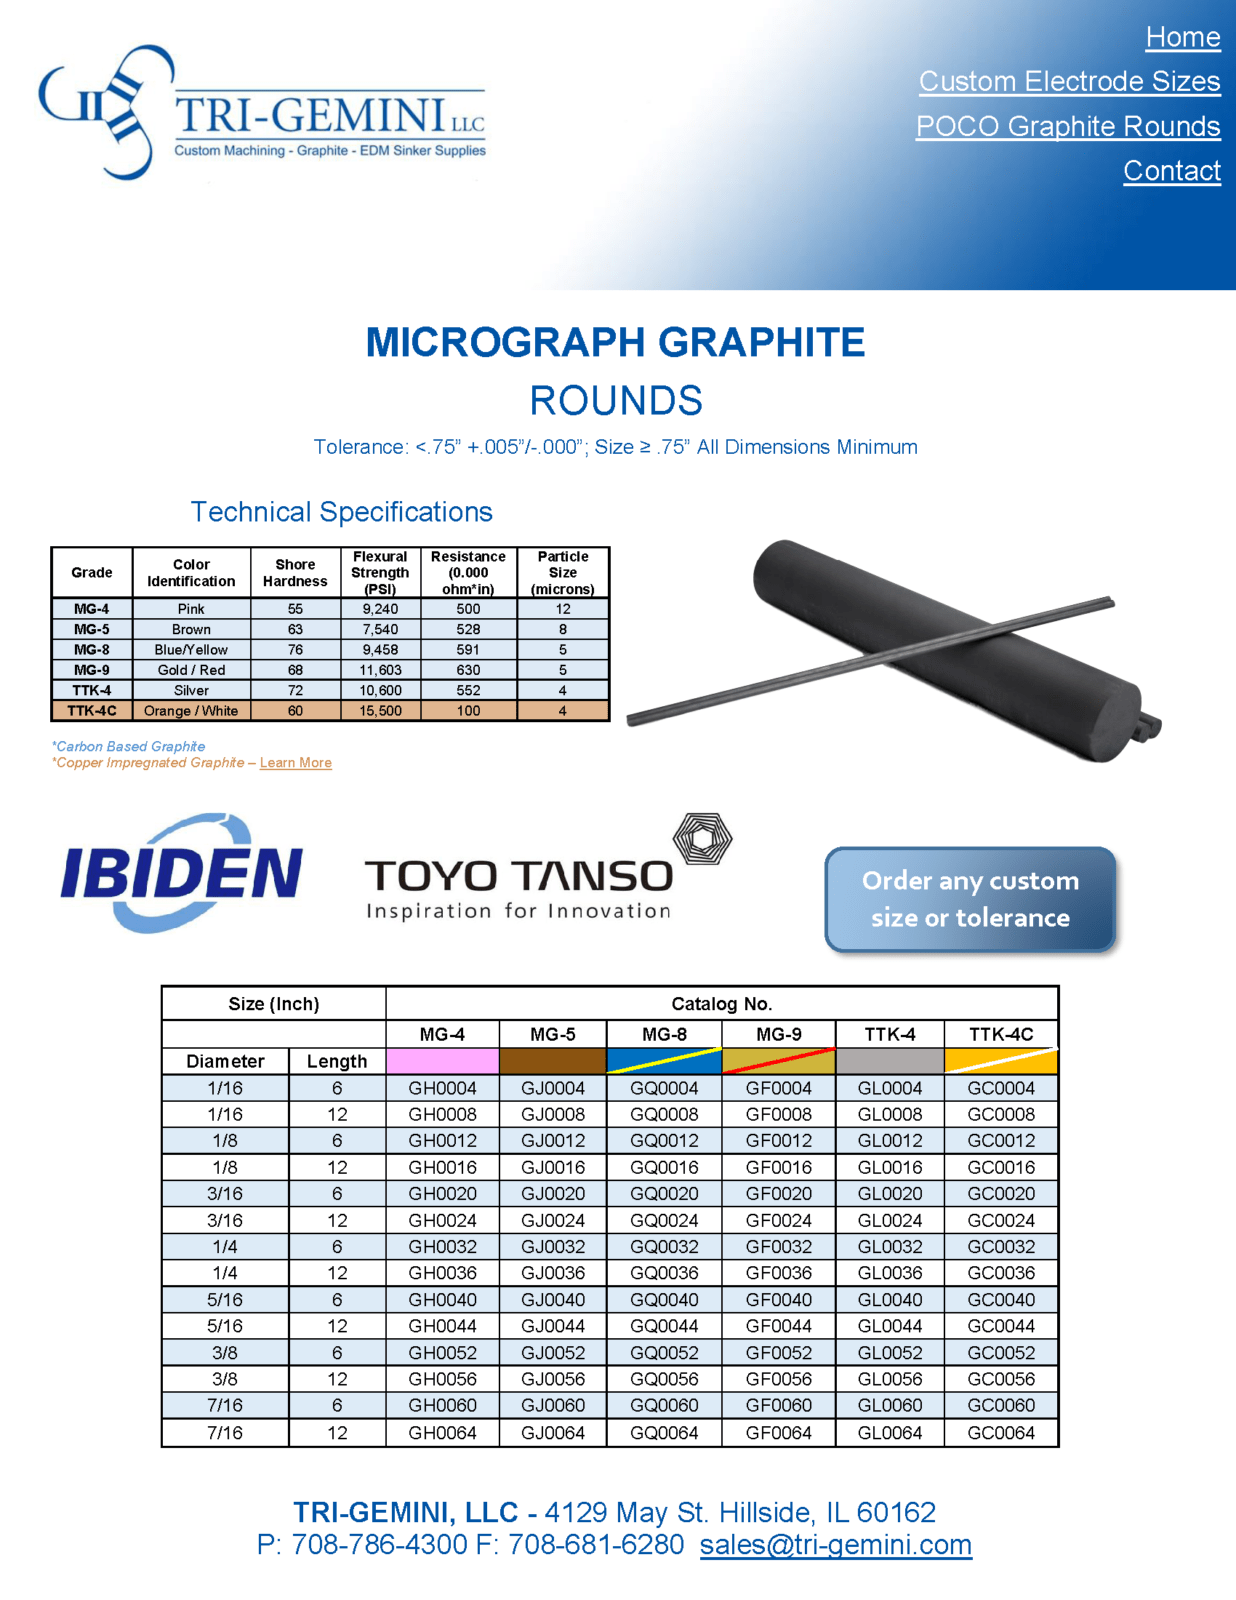 MicroGraph Rounds Toyo Tanso Rounds